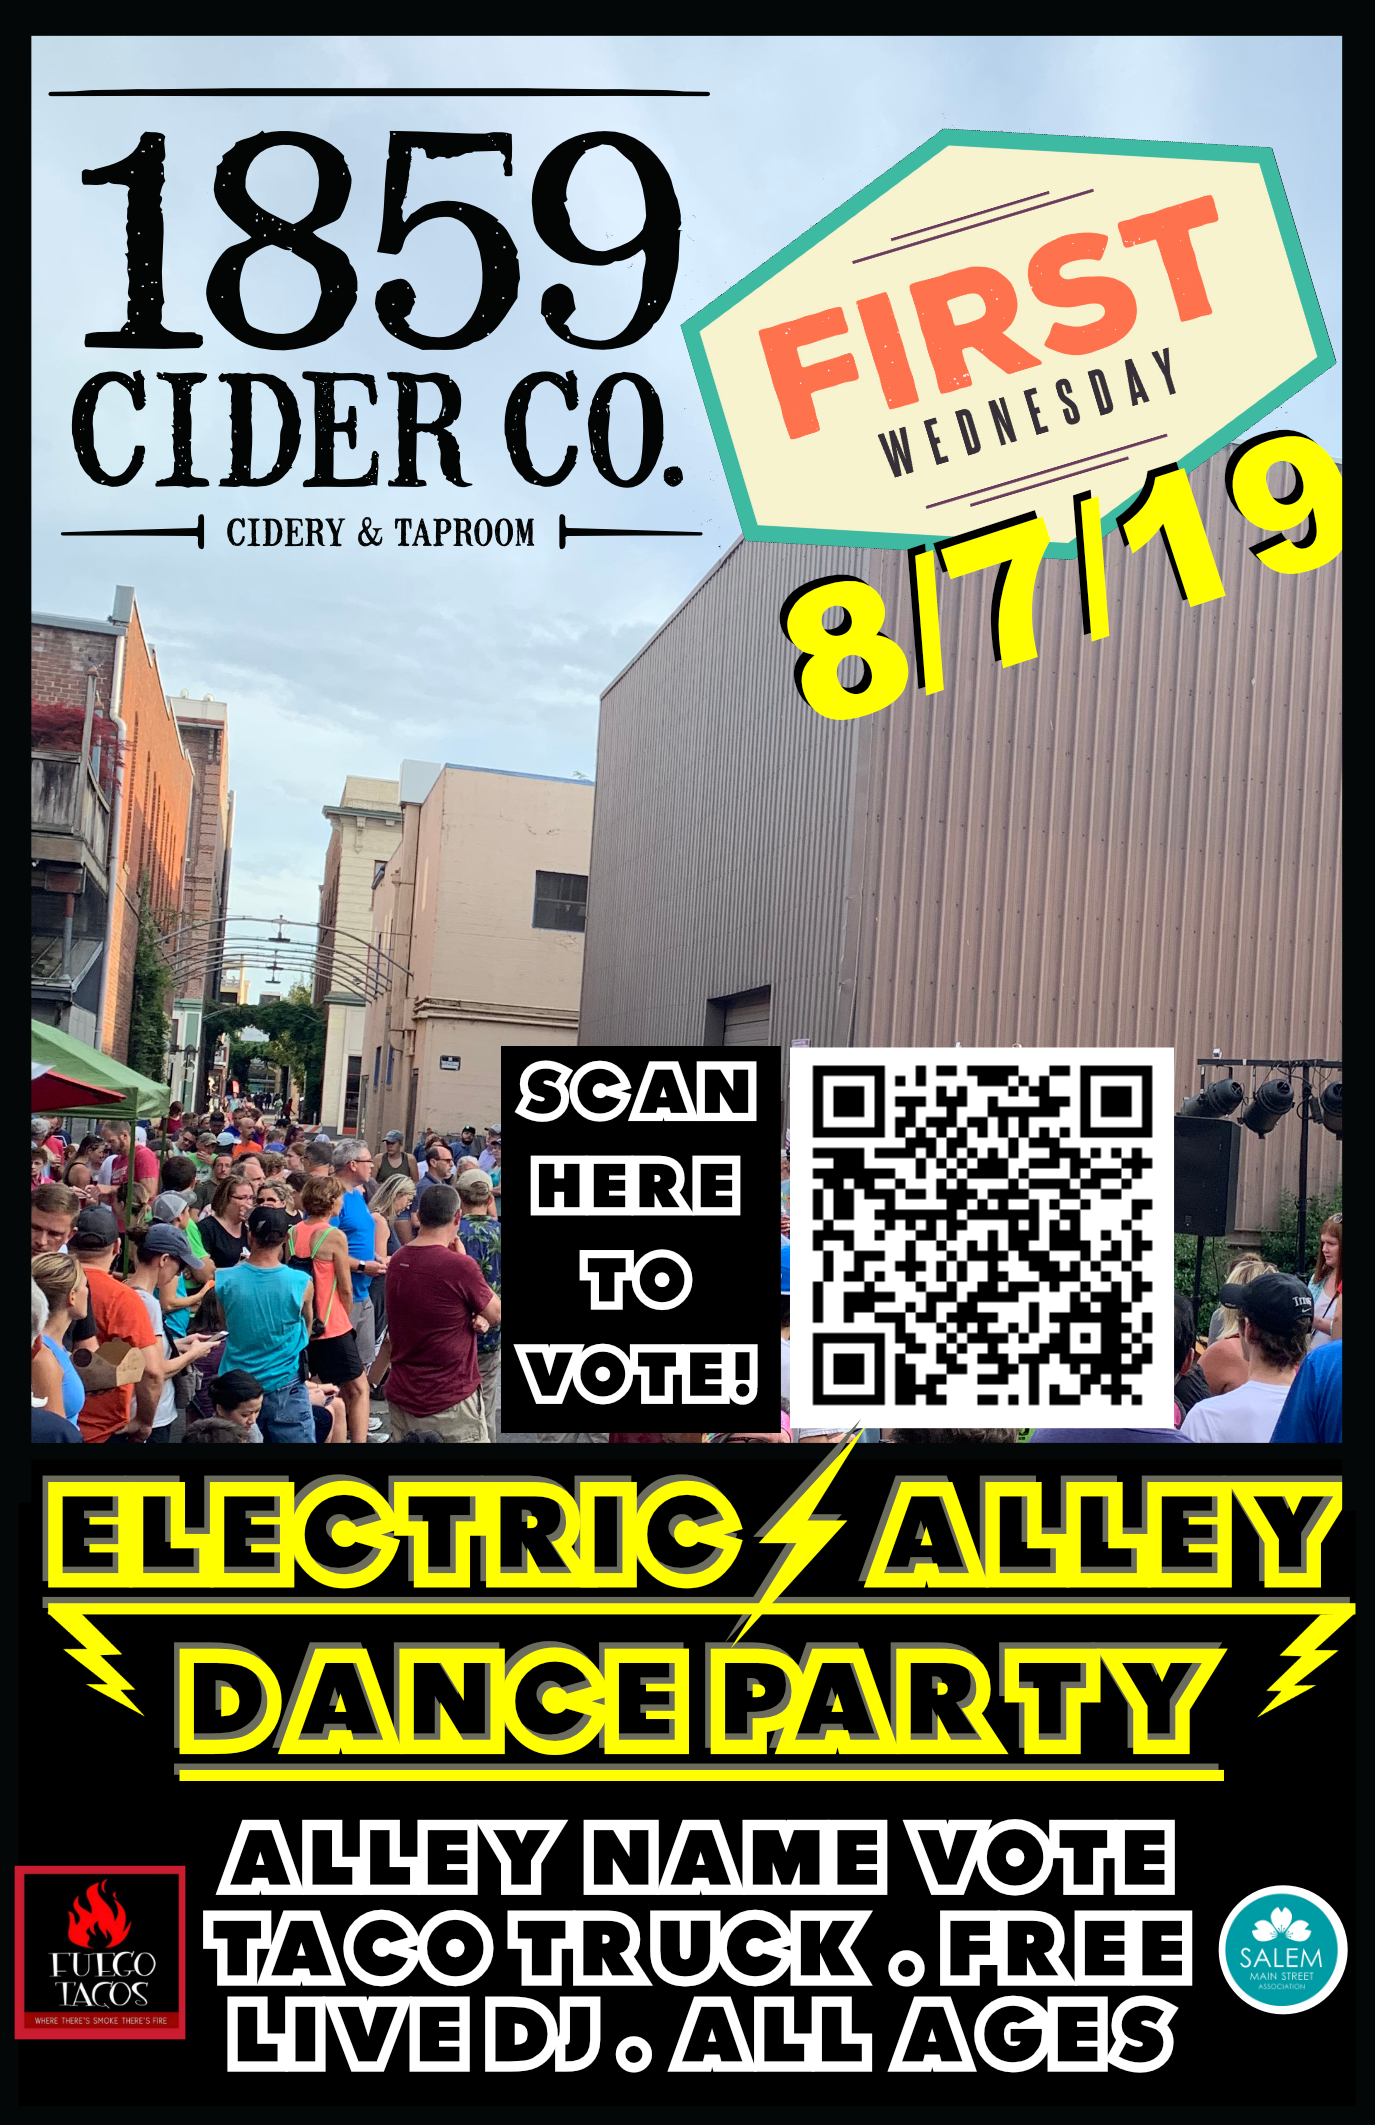 Elecrtic Alley PartyWEB.jpg